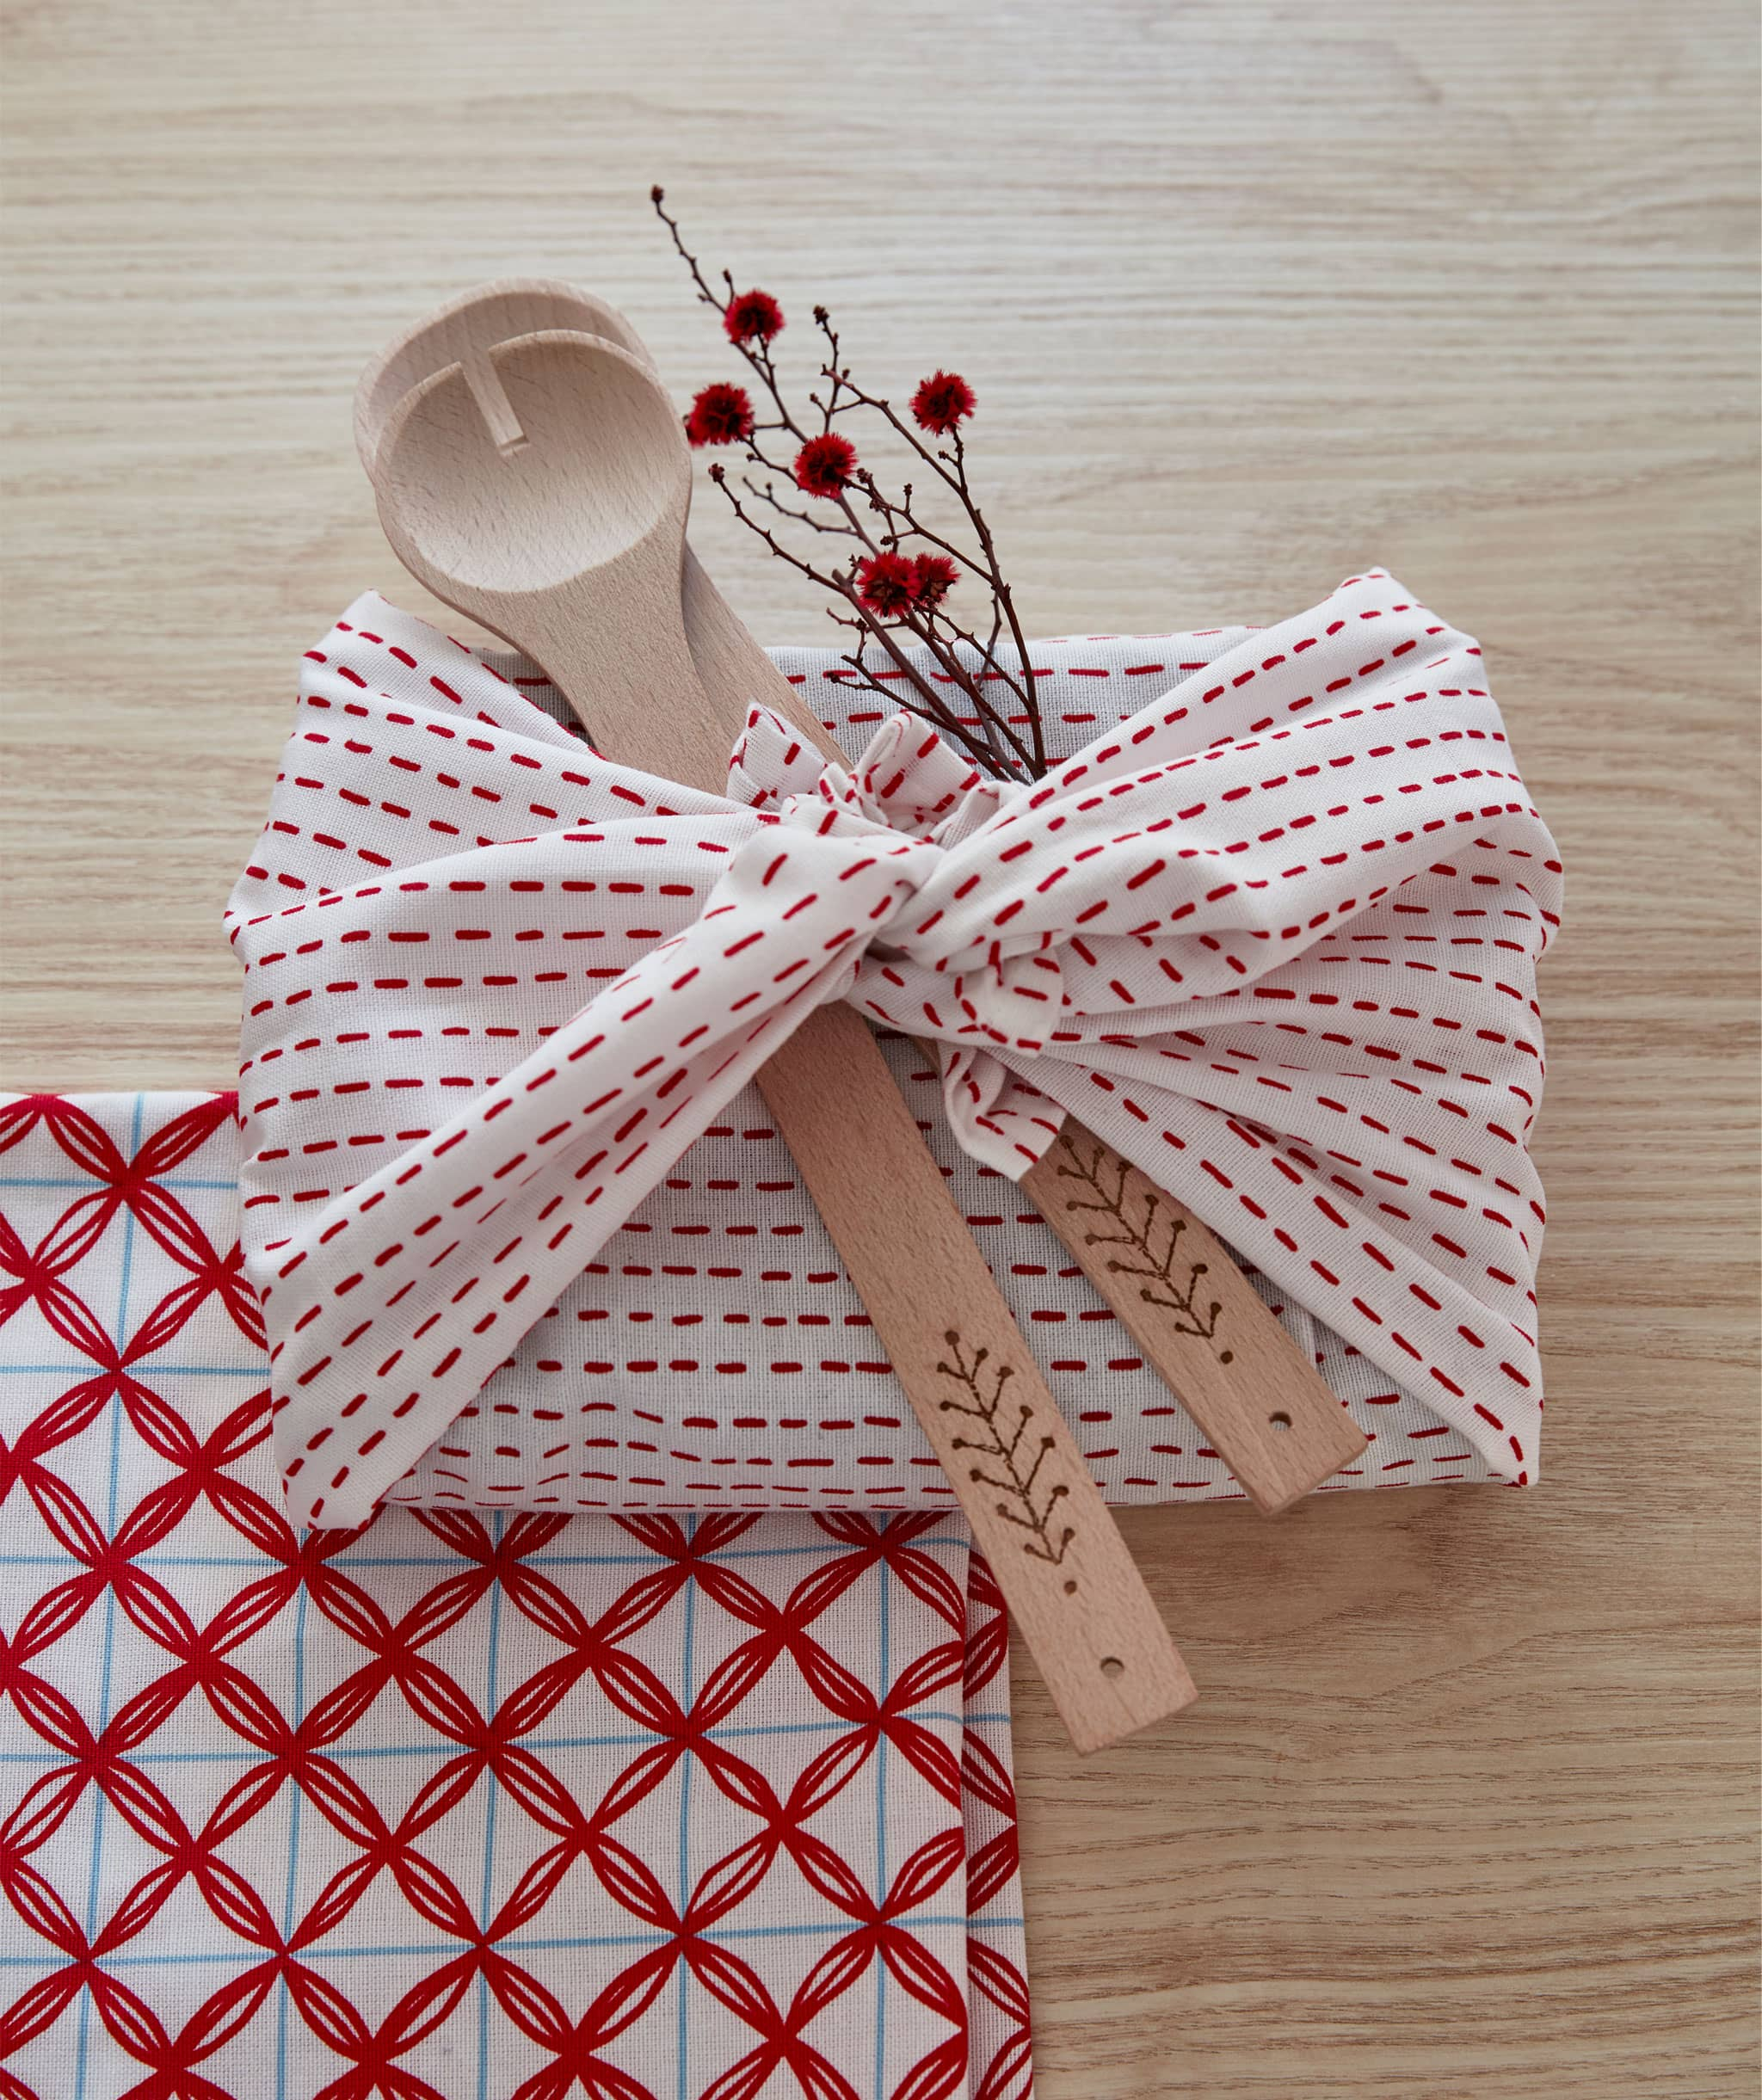 A rectangular gift wrapped not in paper but in a tied piece of cloth, decorated with wooden utensils and a blooming twig.